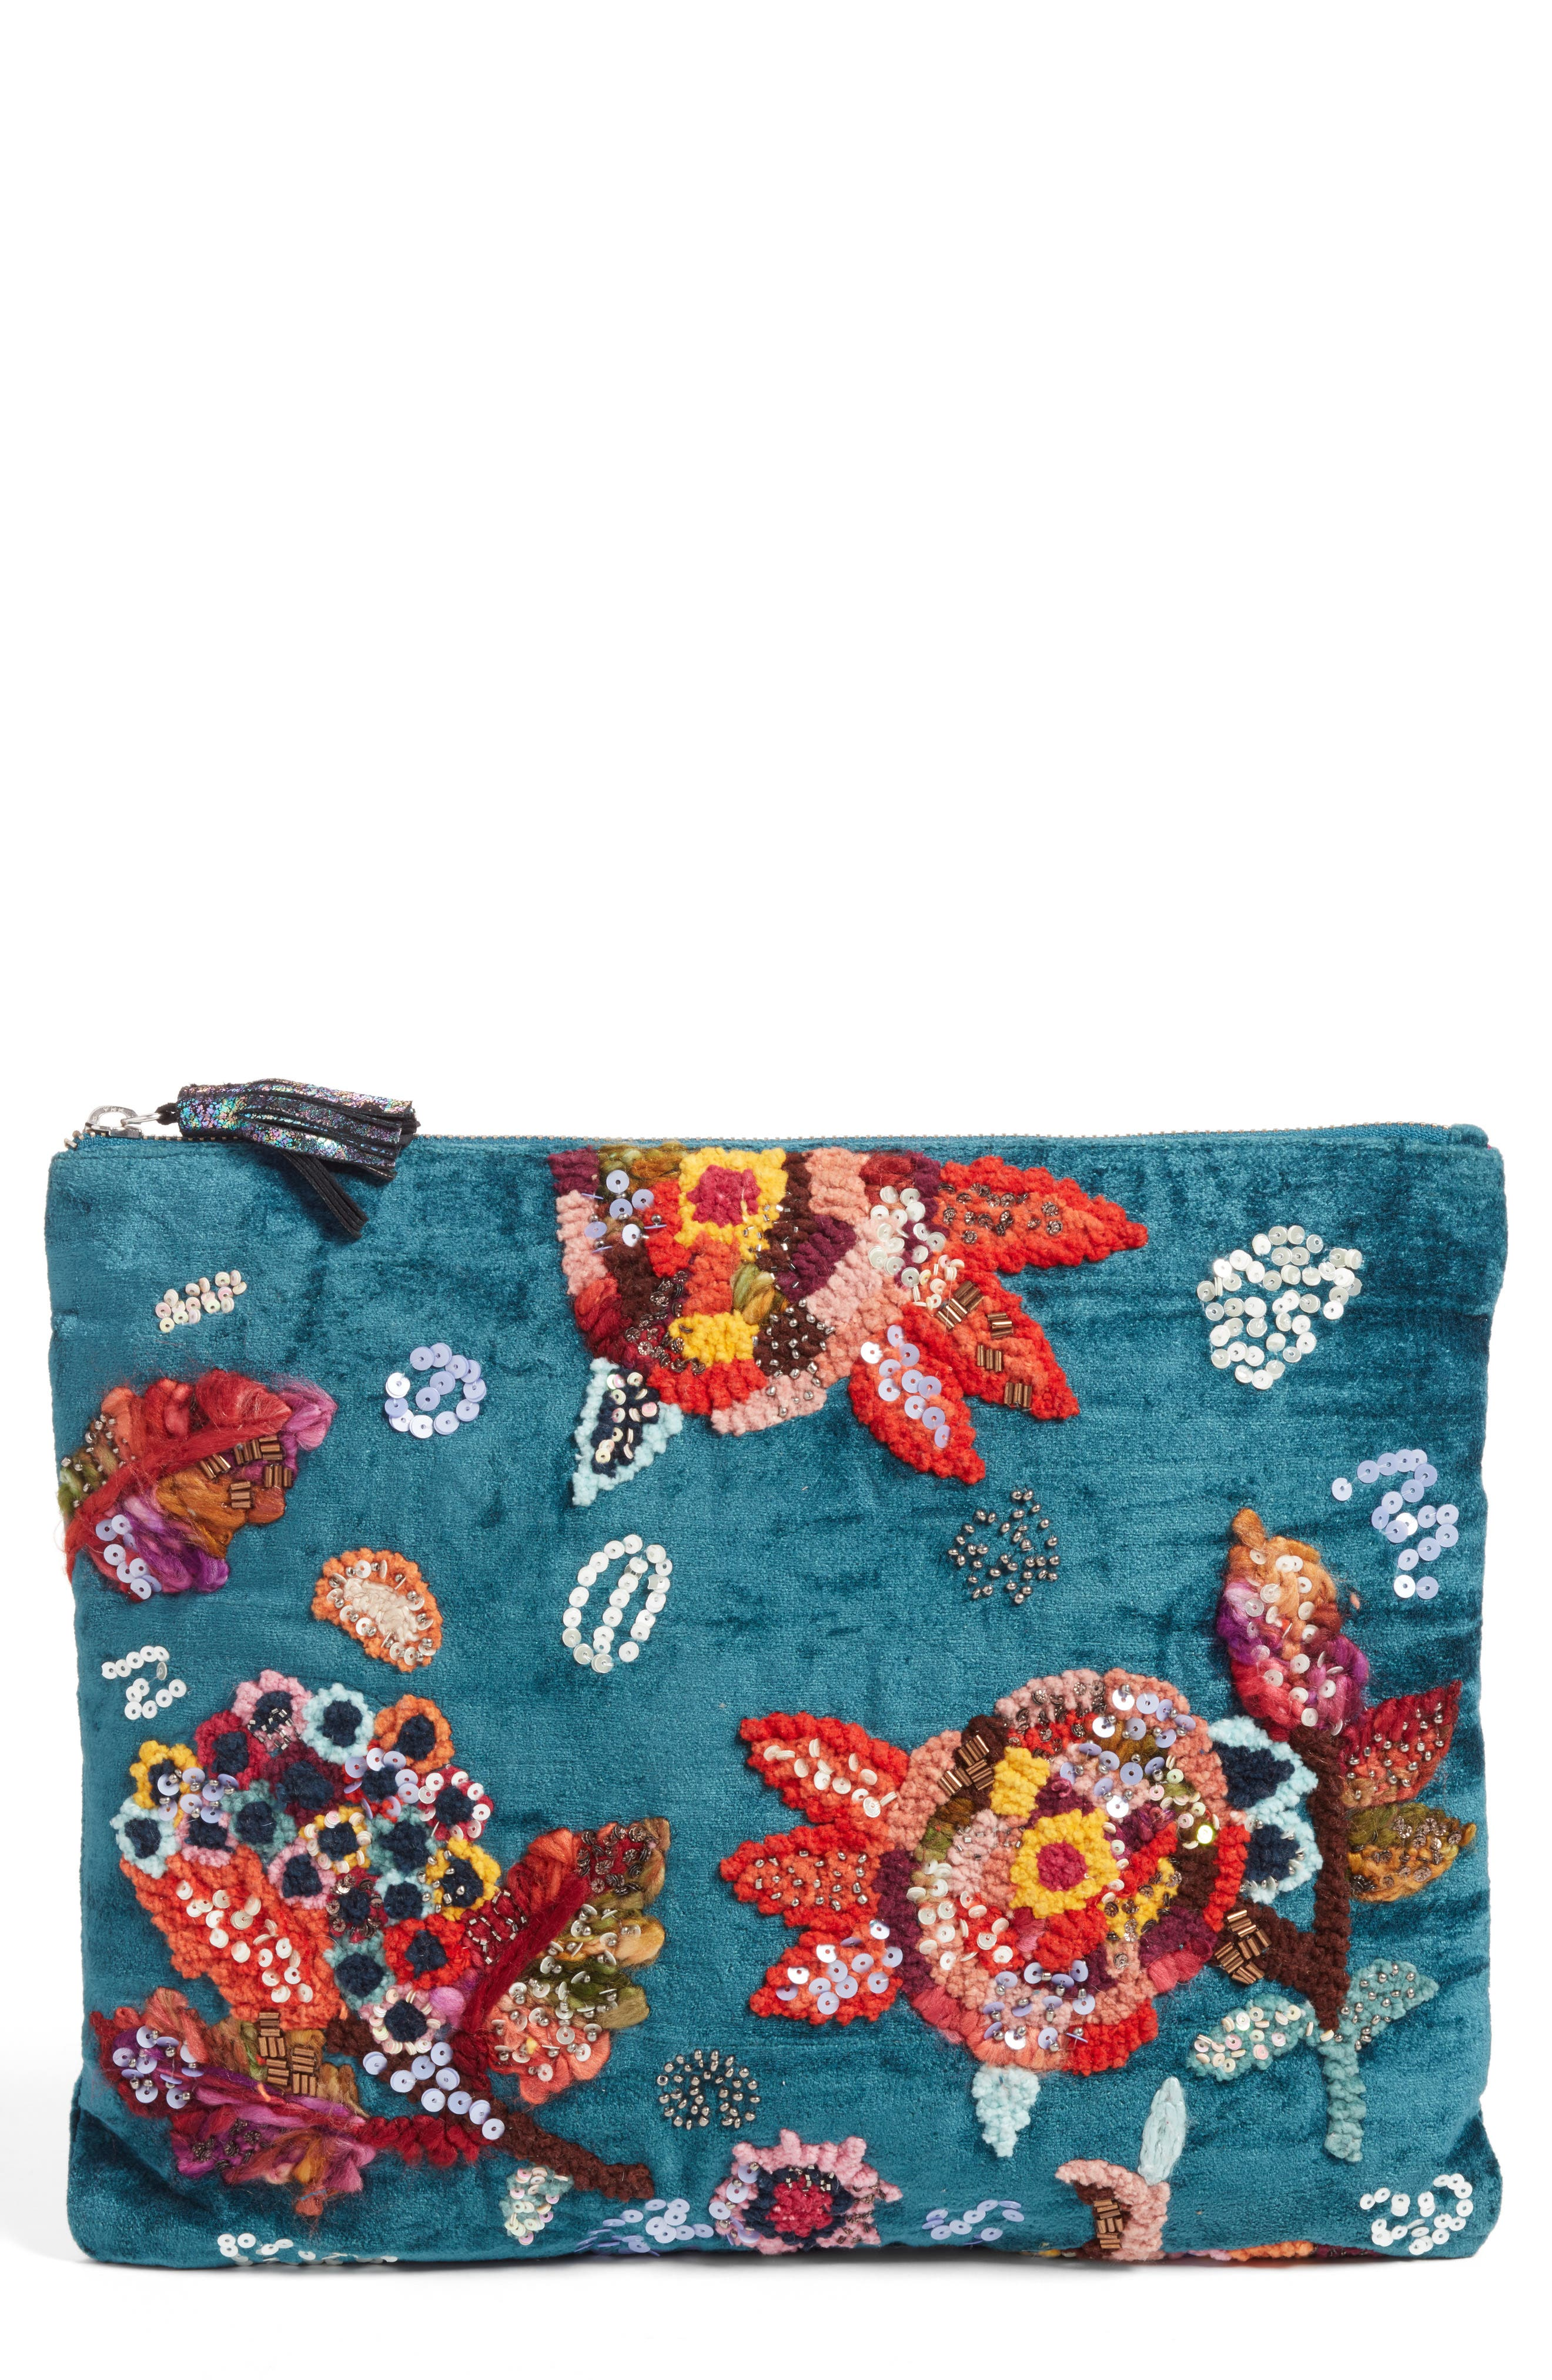 Embellished Clutch,                             Main thumbnail 1, color,                             400